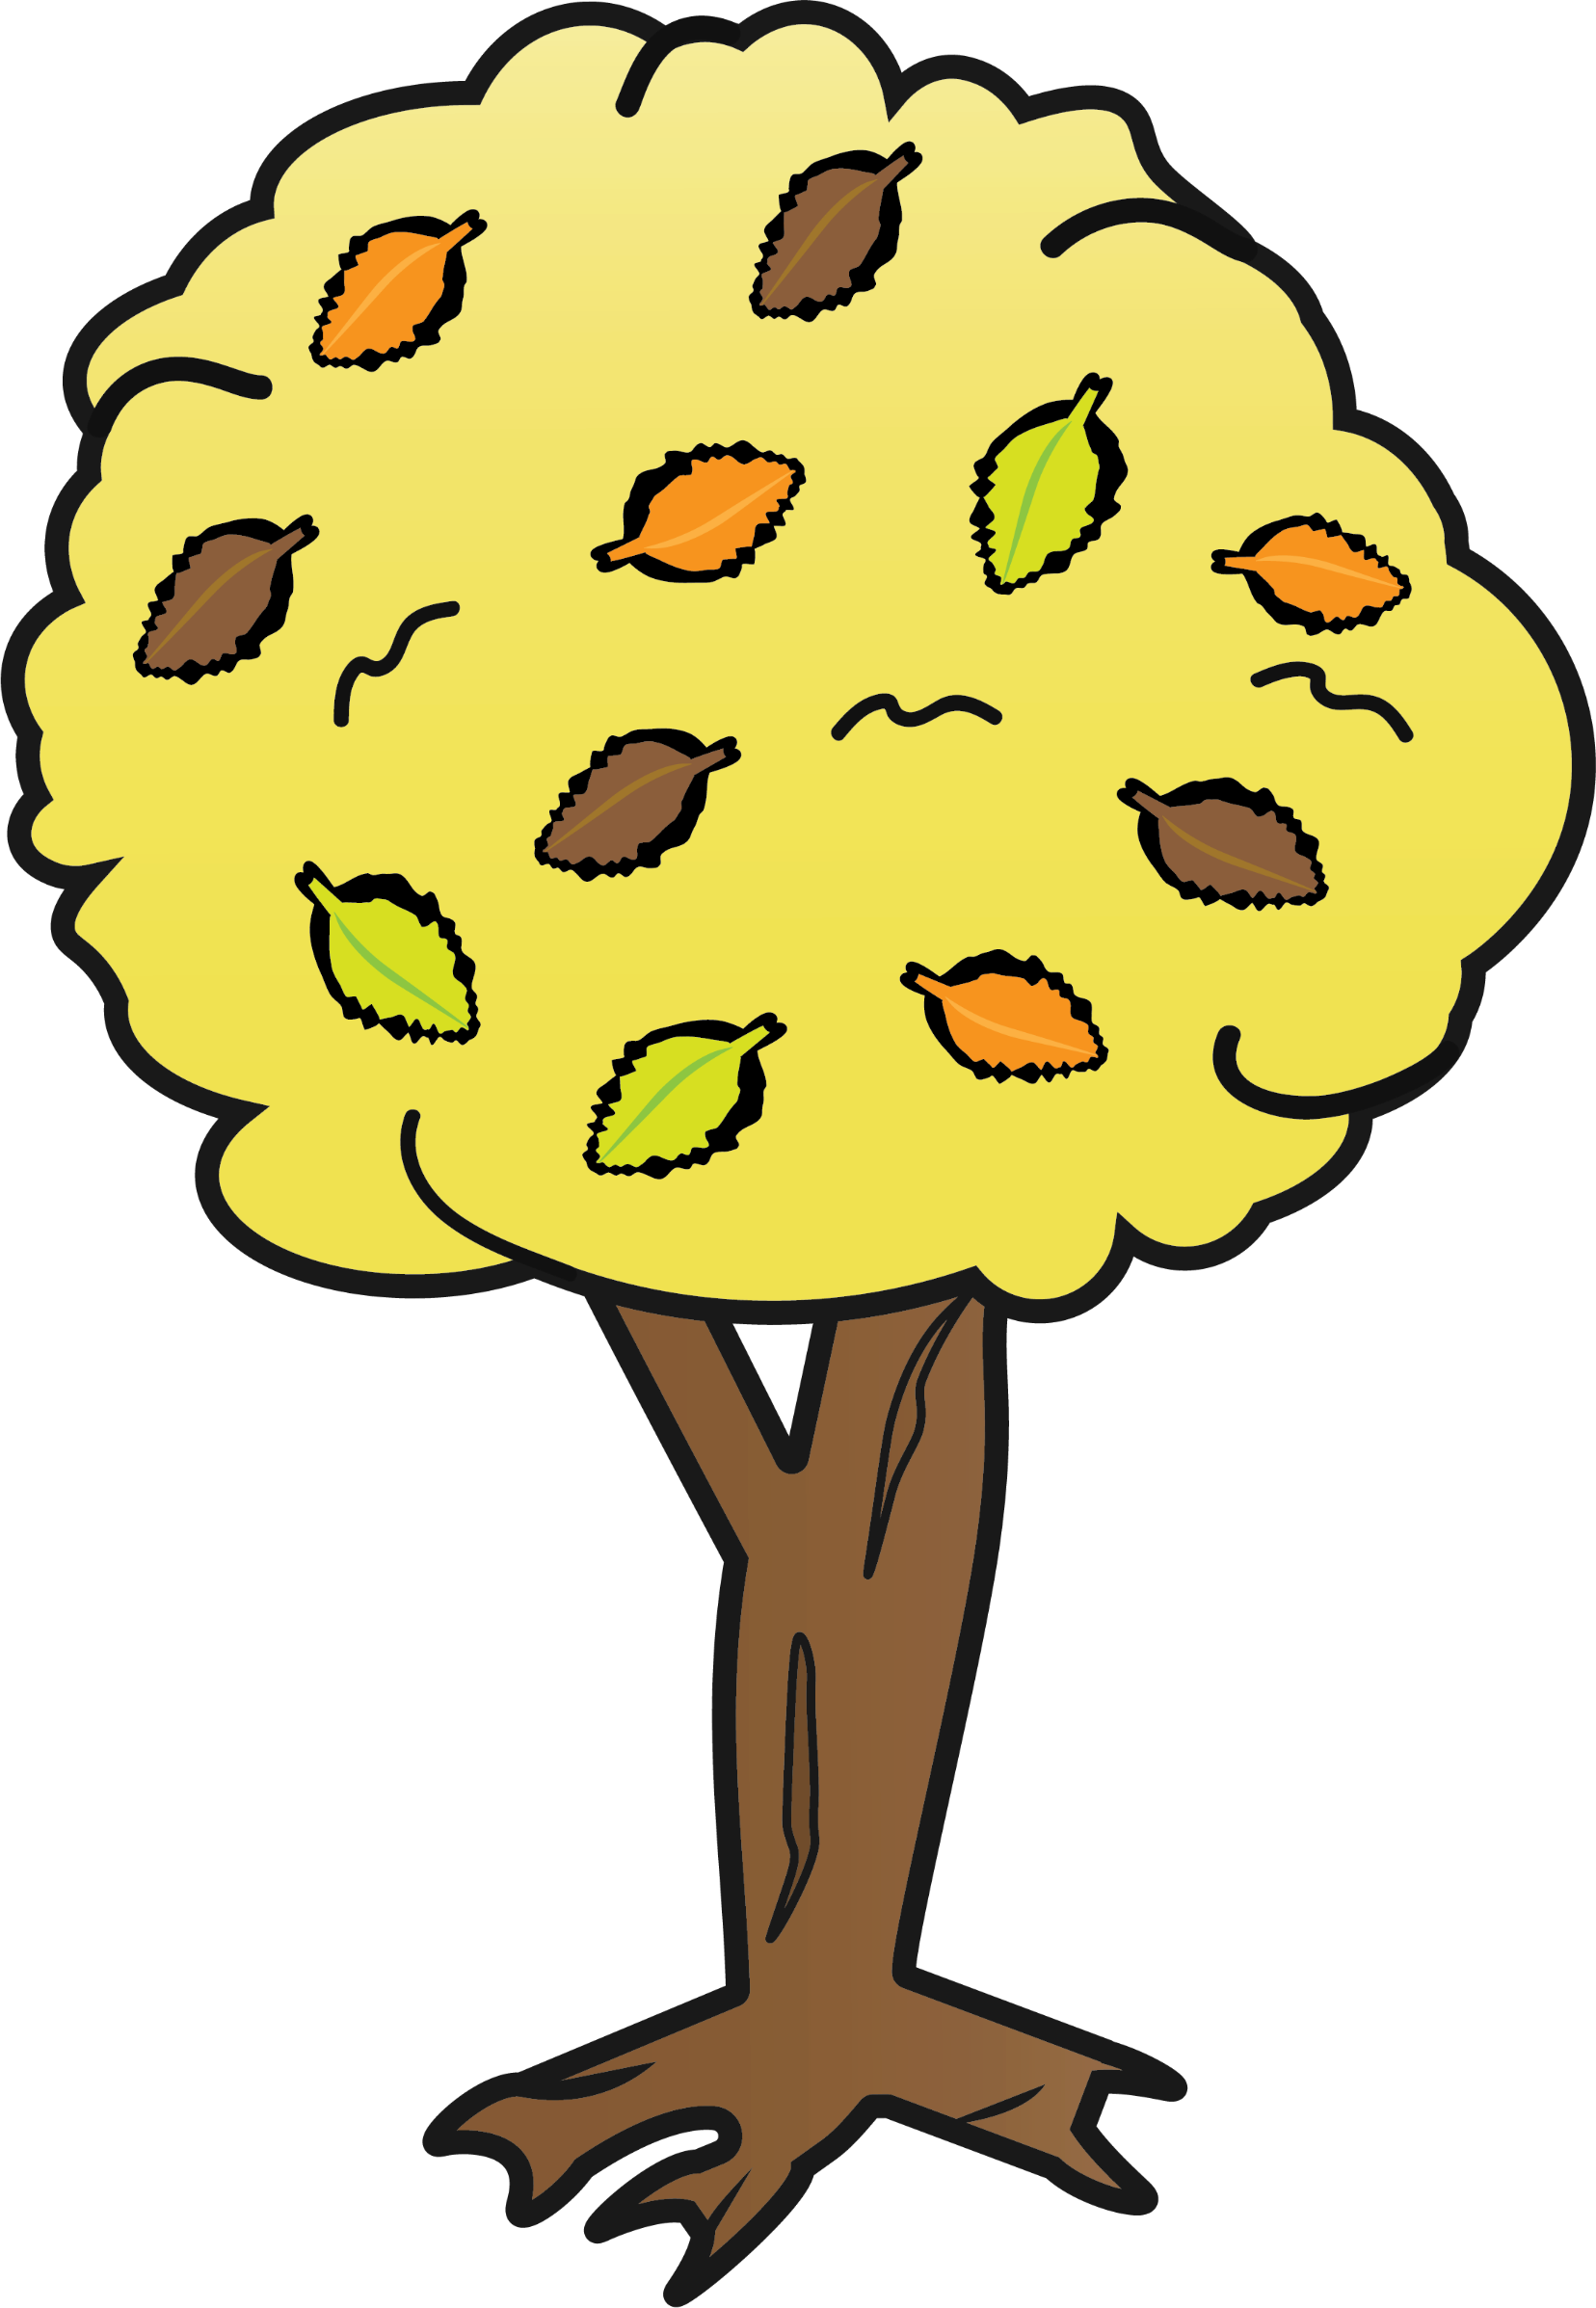 Clipart smile tree. Yellow big image png